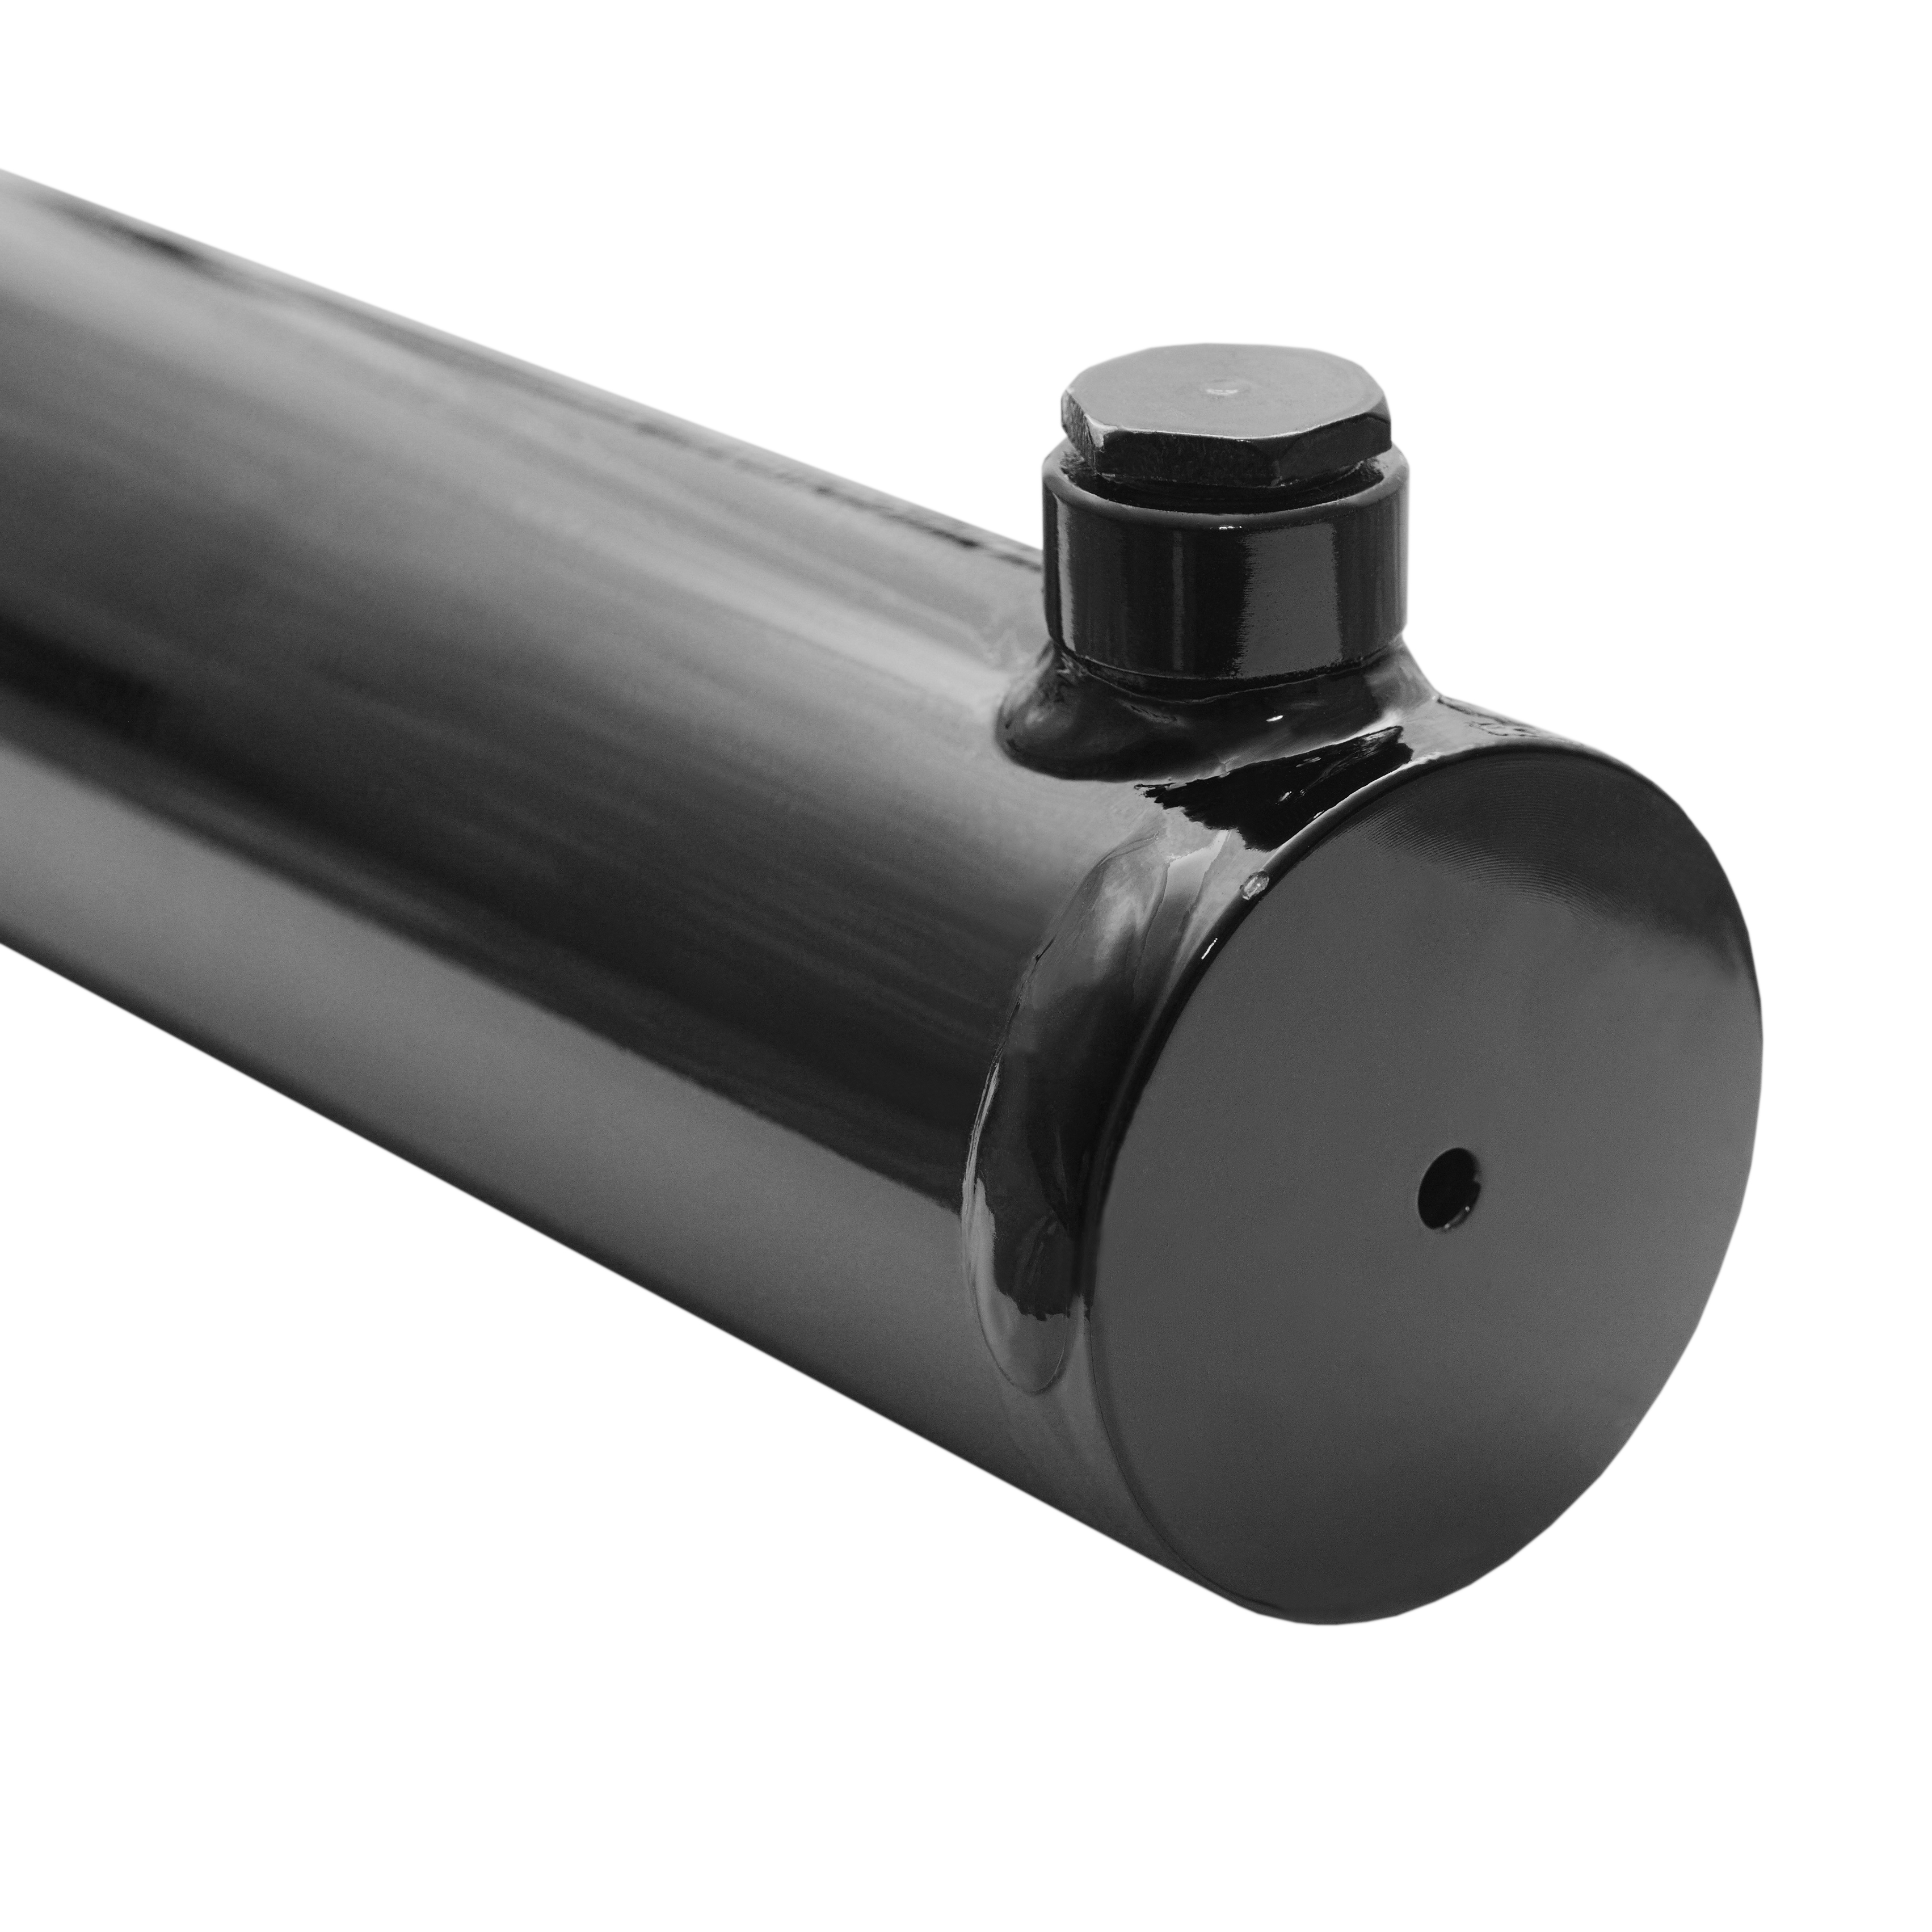 2 bore x 11 stroke hydraulic cylinder, welded universal double acting cylinder | Magister Hydraulics